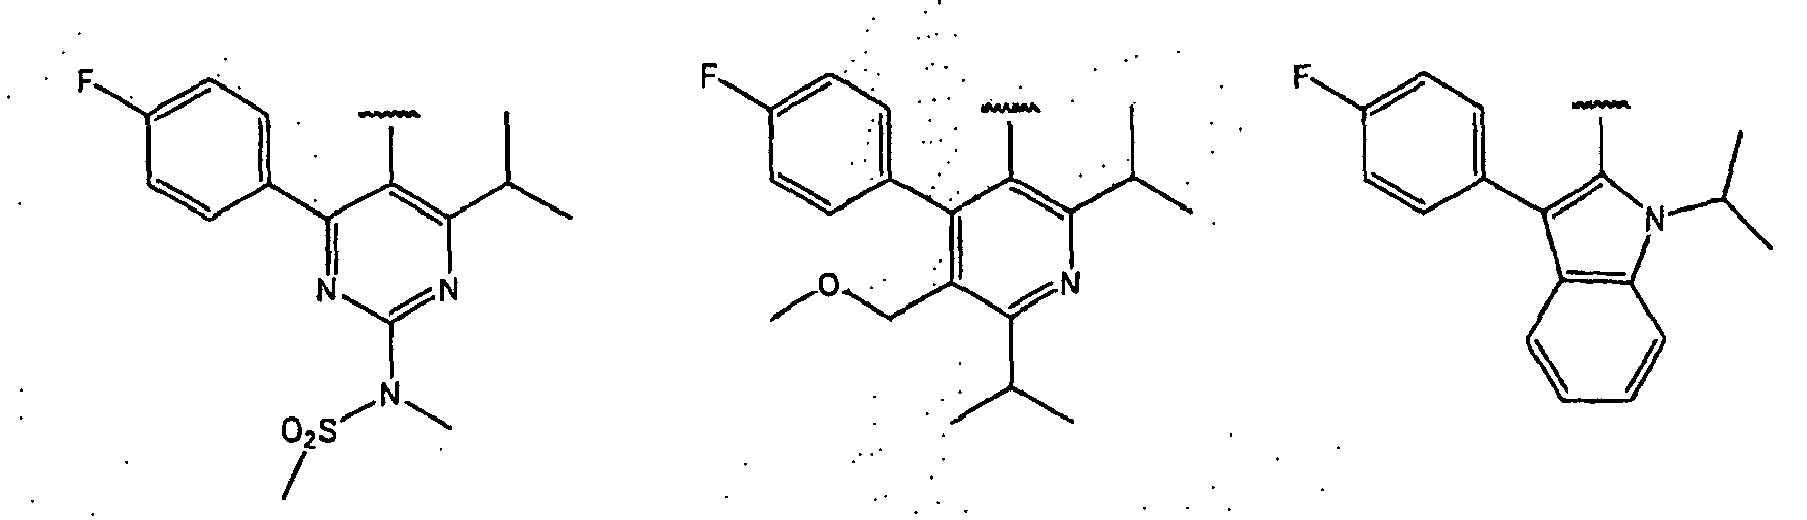 tth coa synthesis Proteobacteria form ala by condensing glycine and succinyl-coa in a reaction catalyzed synthesis of protoporphyrin ix from tth thermus thermophilus.